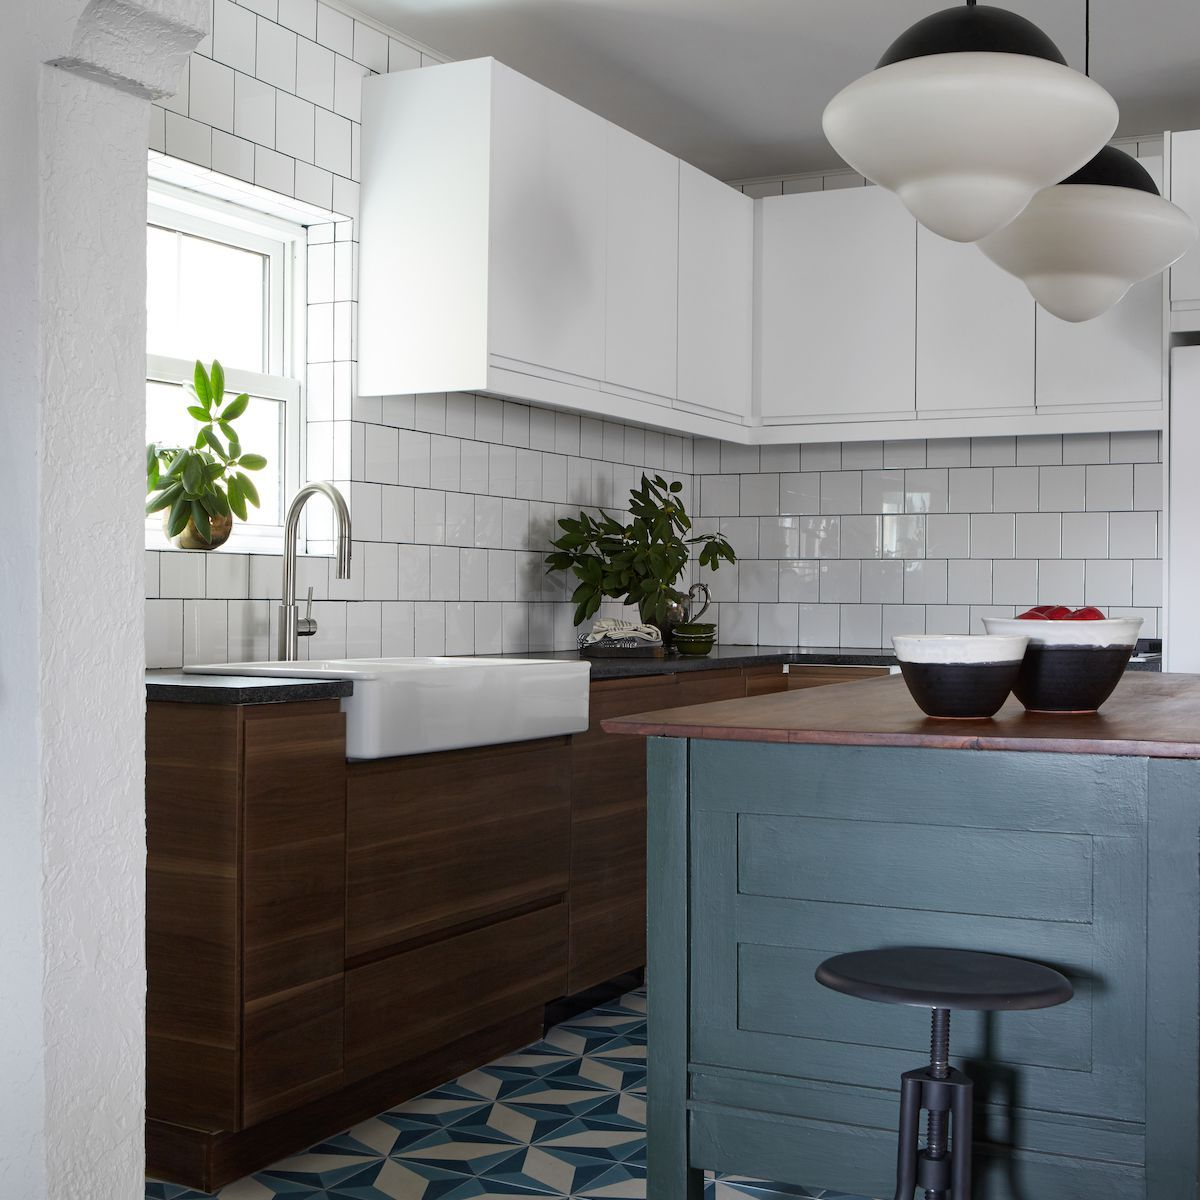 12 Of The Best Interior Design Blogs To Bookmark Right Now Classy Kitchen Kitchen Design Small Best Interior Design Blogs